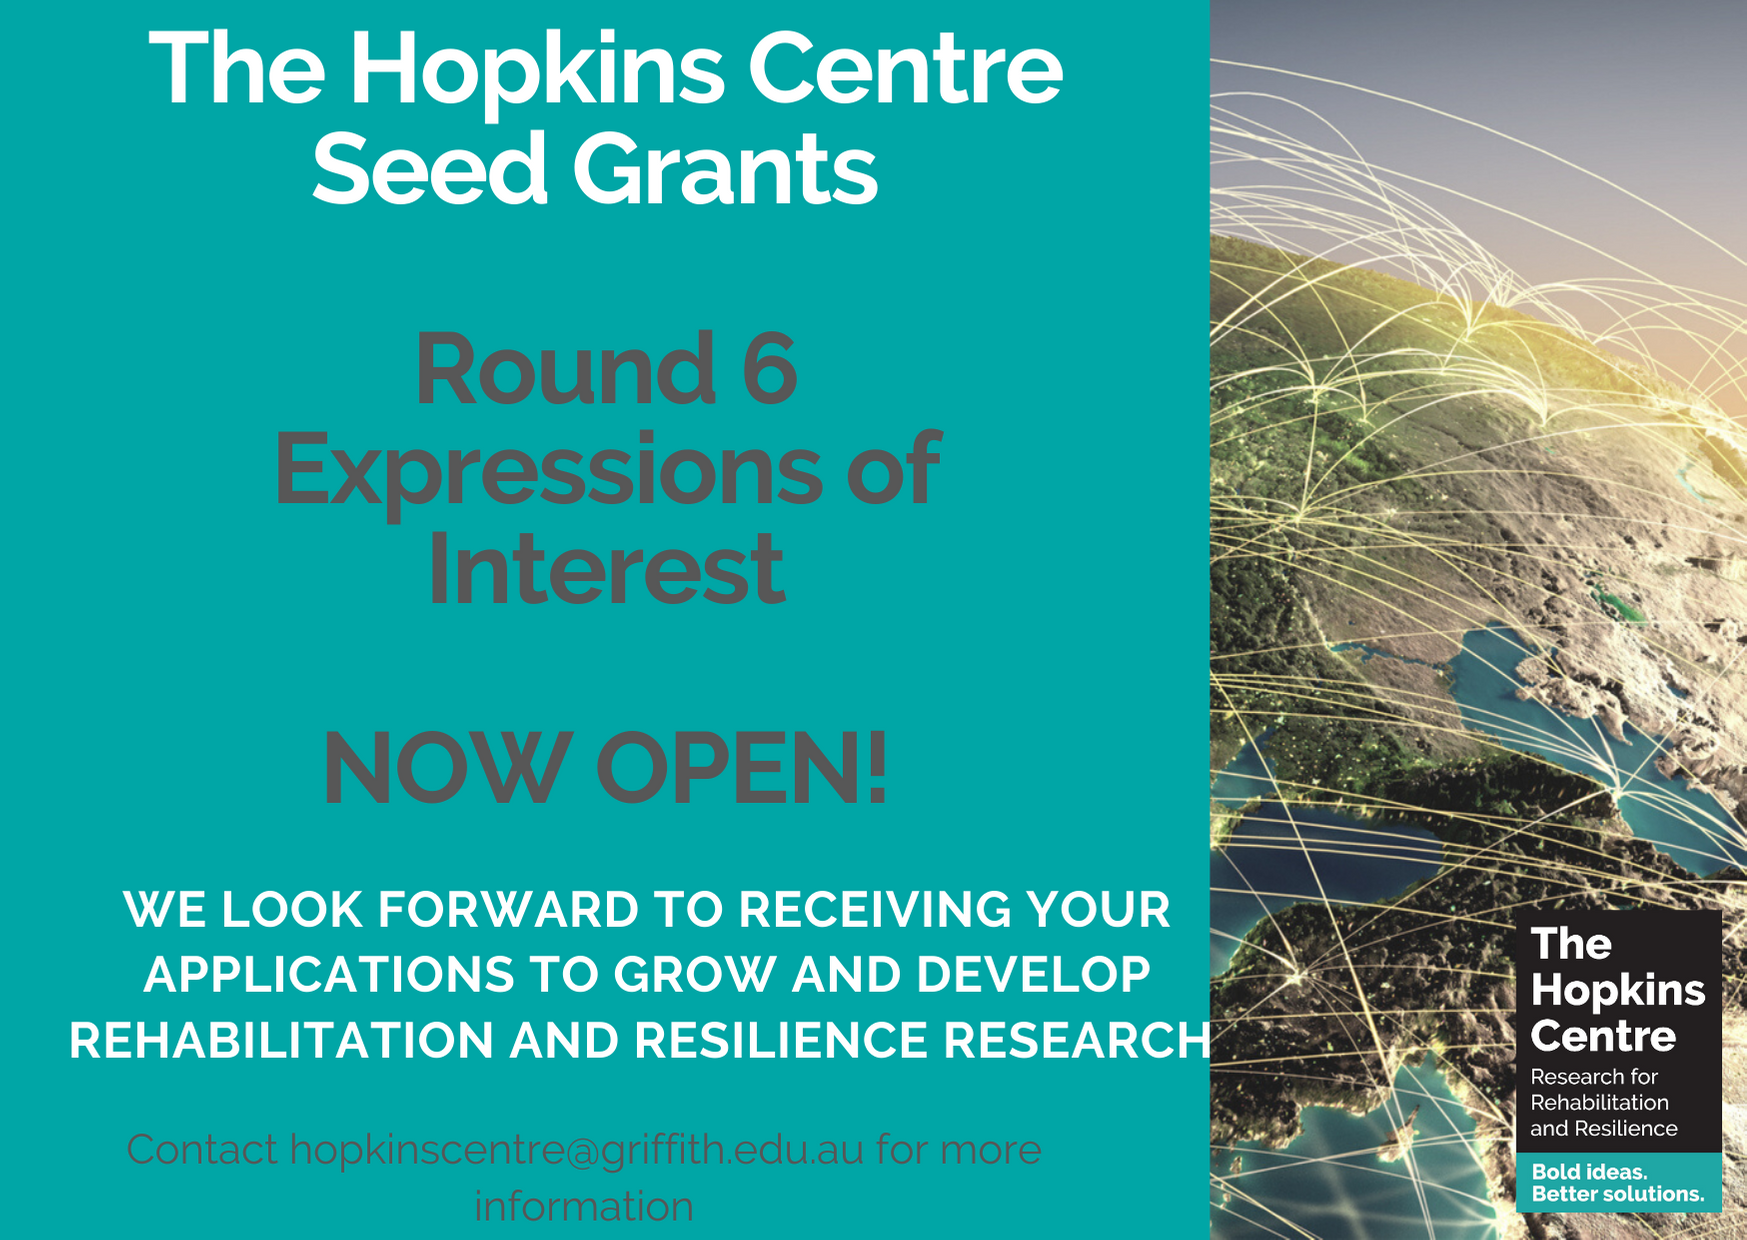 The Hopkins Centre Seed Grant image, announcing round 6 is now open and to submit applications to hopkinscentre@griffith.edu.au